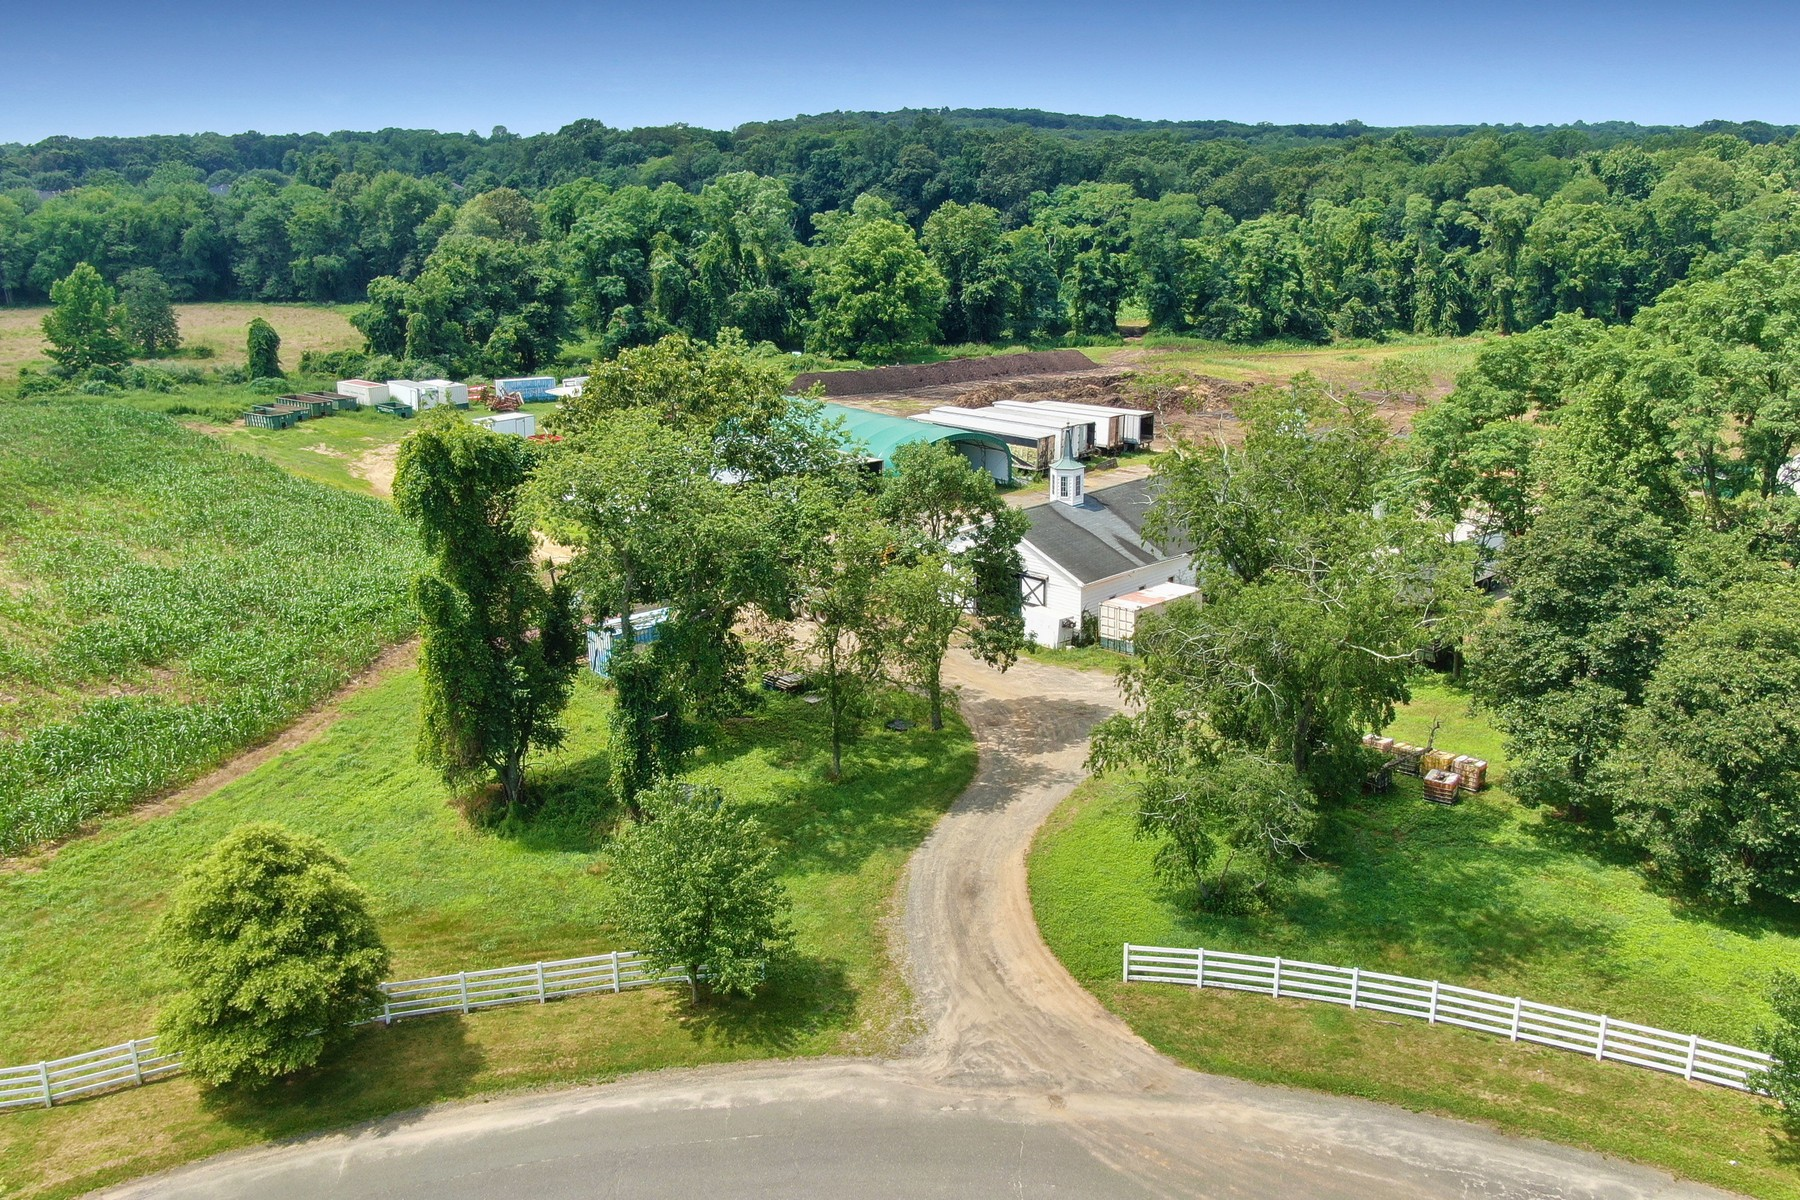 Land for Sale at Residential Land 140 Crine Road, Colts Neck, New Jersey 07722 United States